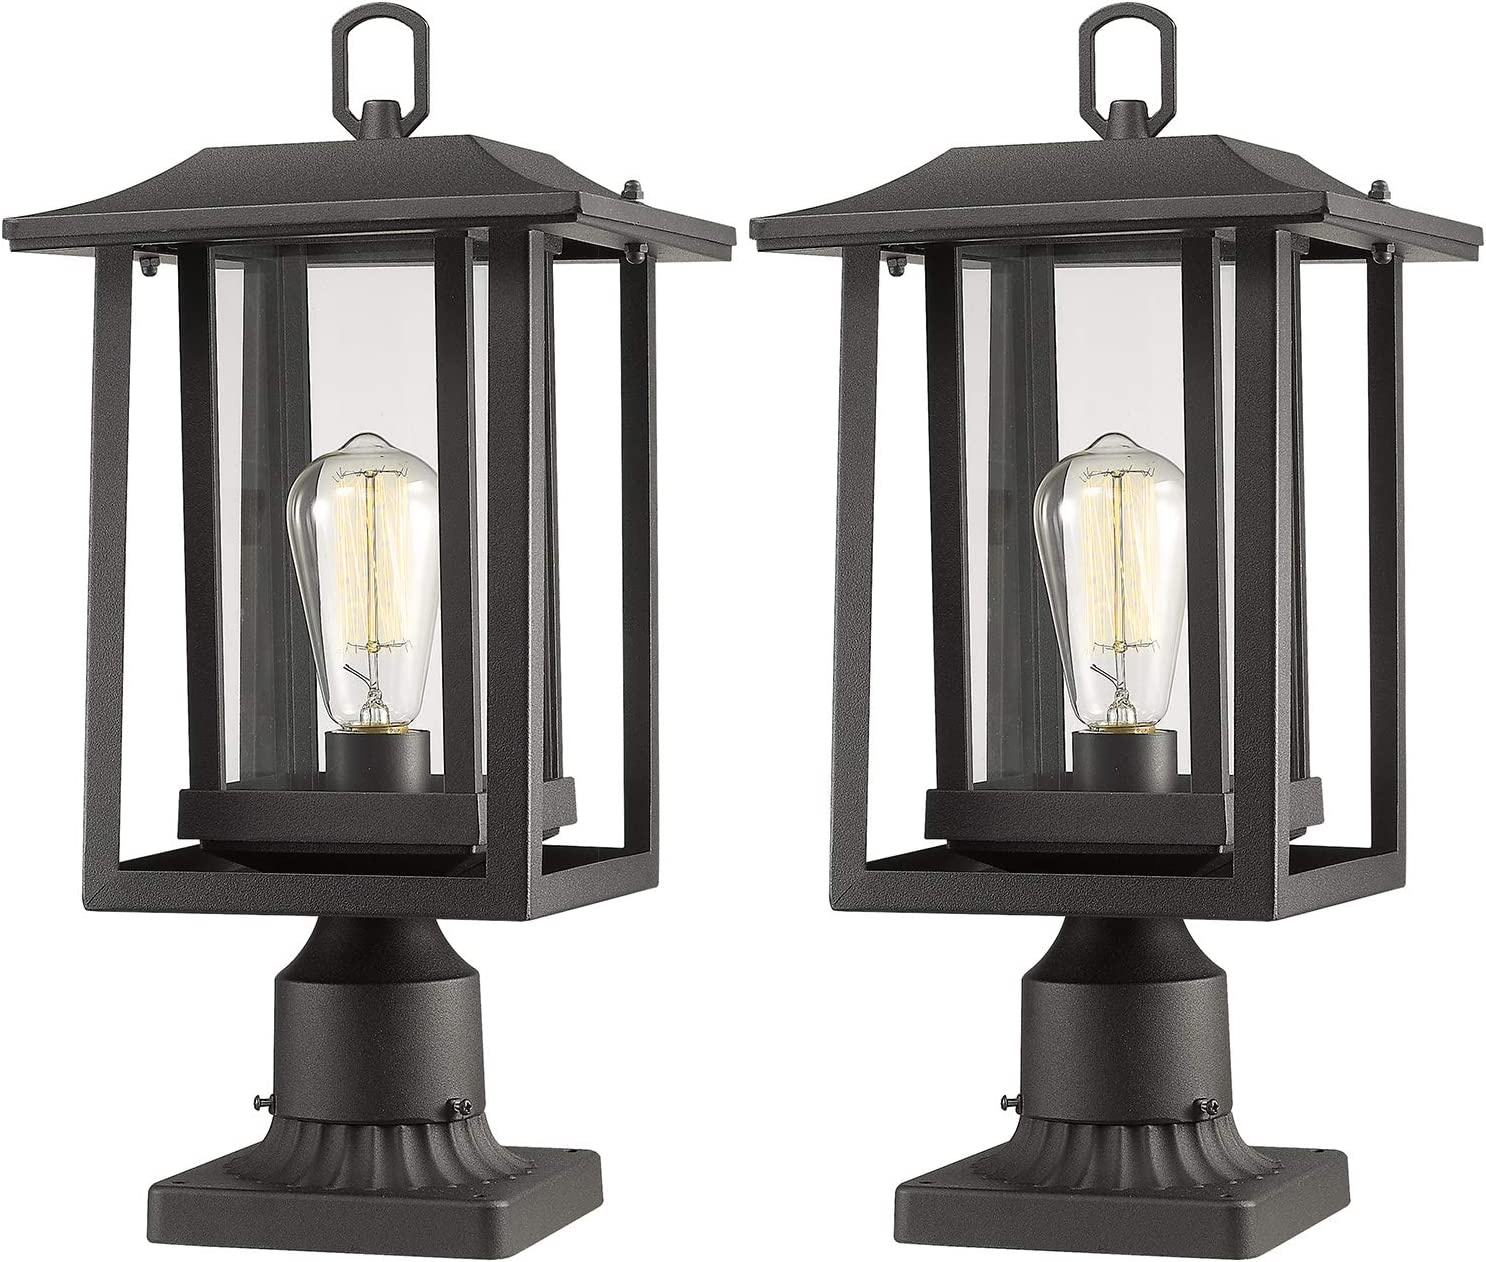 Beionxii Outdoor Post Light Fixture, 2-Pack Large Exterior Post Lantern with 3-Inch Pier Mount Base, Sand Textured Black with Clear Glass(8.9